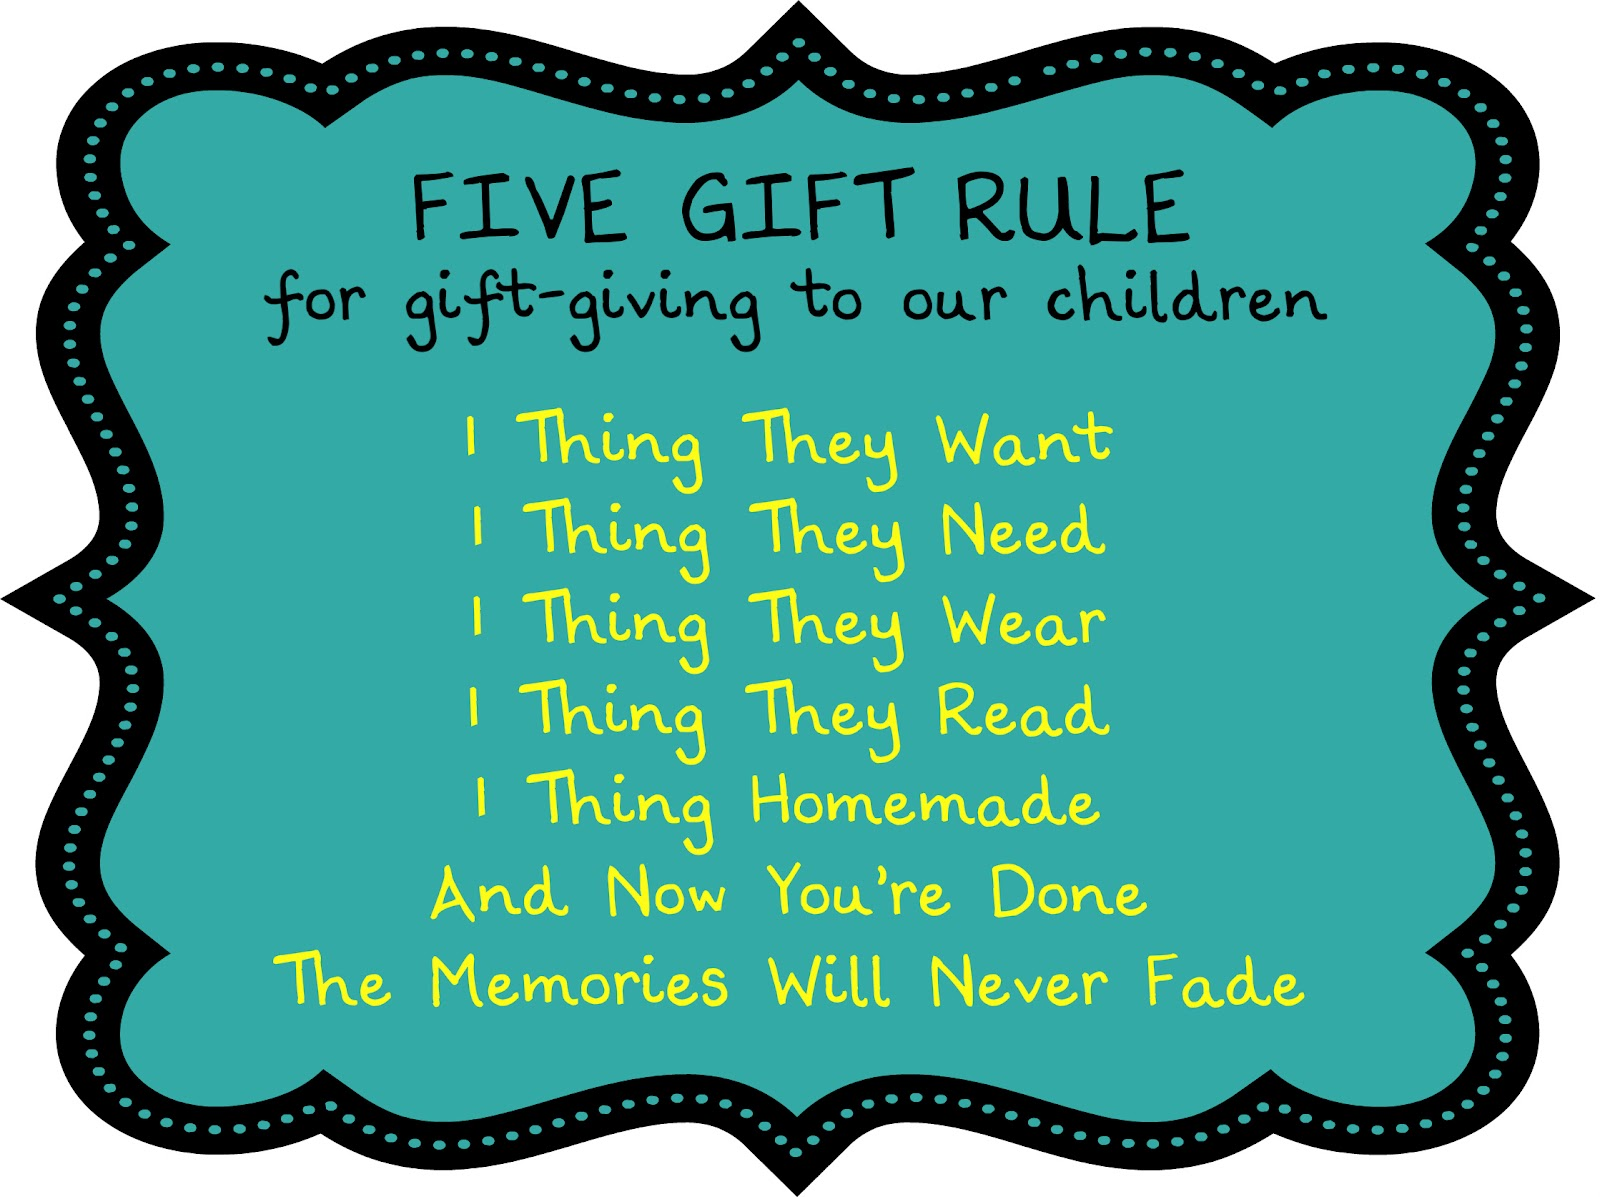 Birthing Me The Five Gift Rule In Action